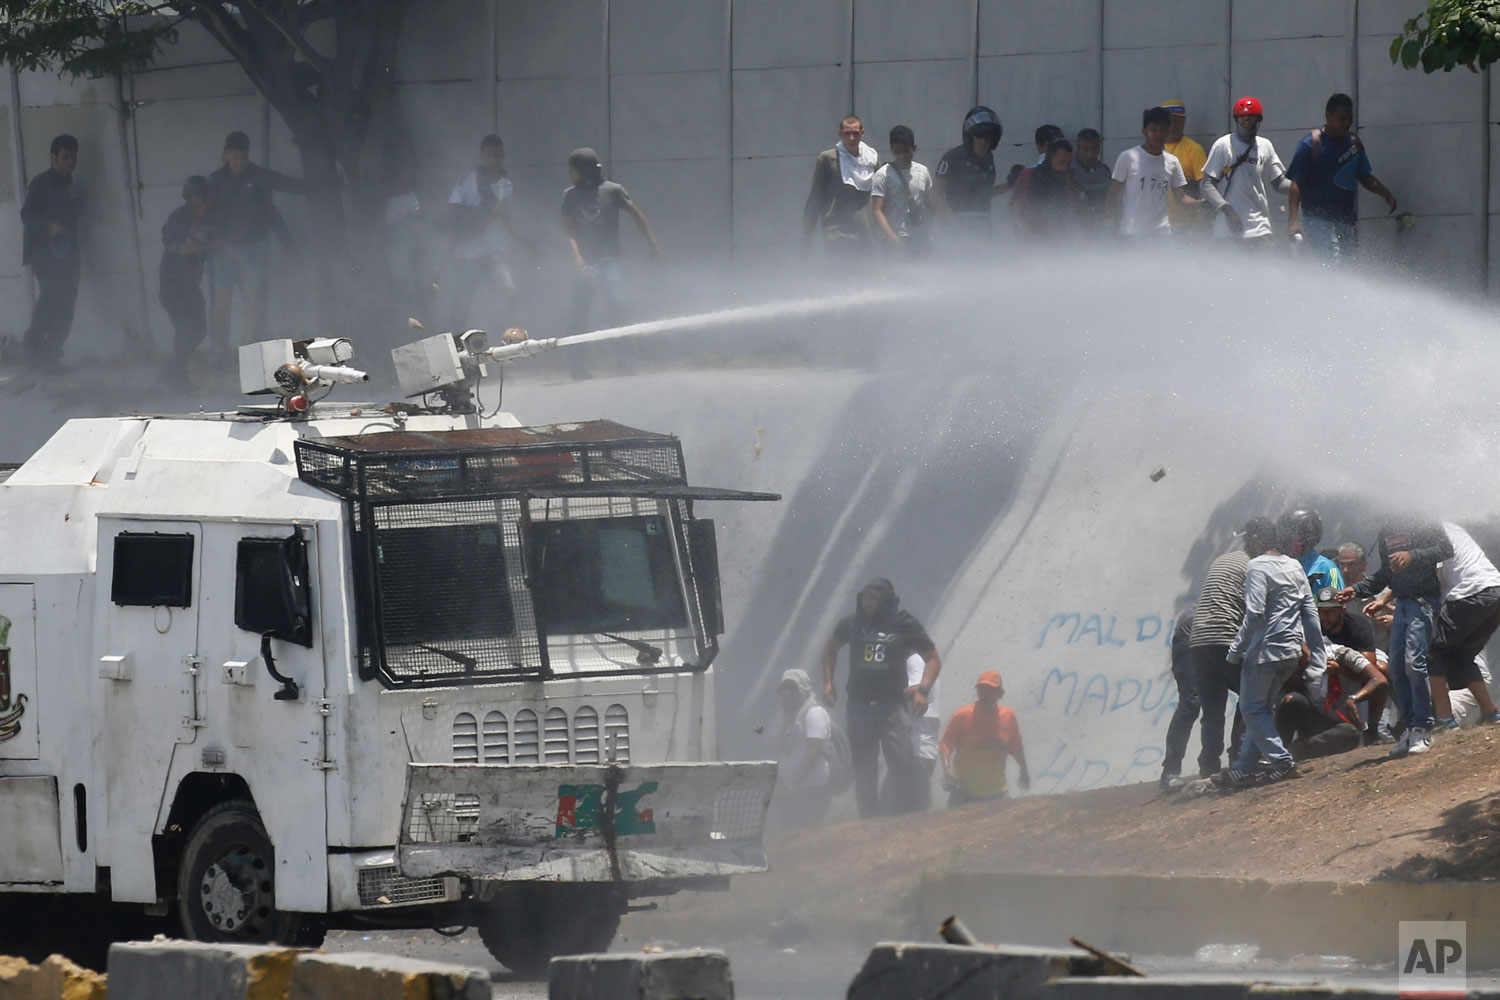 A National Guard water canon sprays opponents of Venezuela's President Nicolas Maduro during an attempted military uprising that eventually failed in Caracas, Venezuela, Tuesday, April 30, 2019. (AP Photo/Ariana Cubillos)